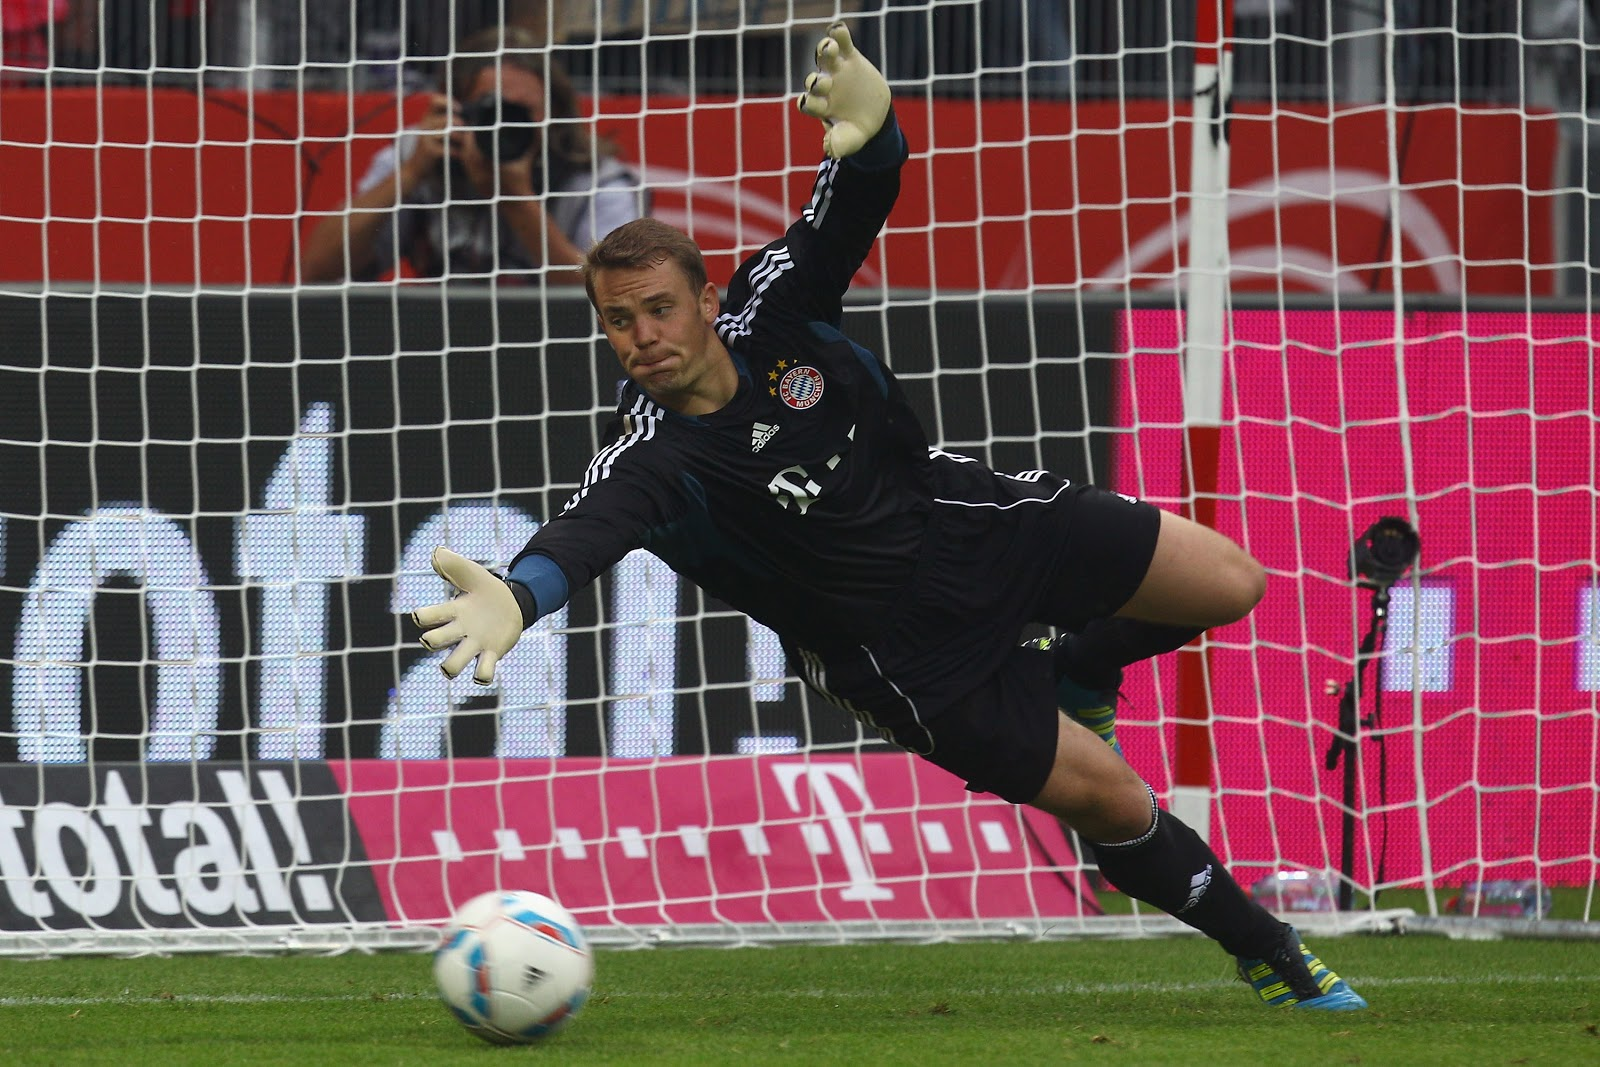 Beautiful Manuel Neuer Save Goal Hd Mobile Jpg